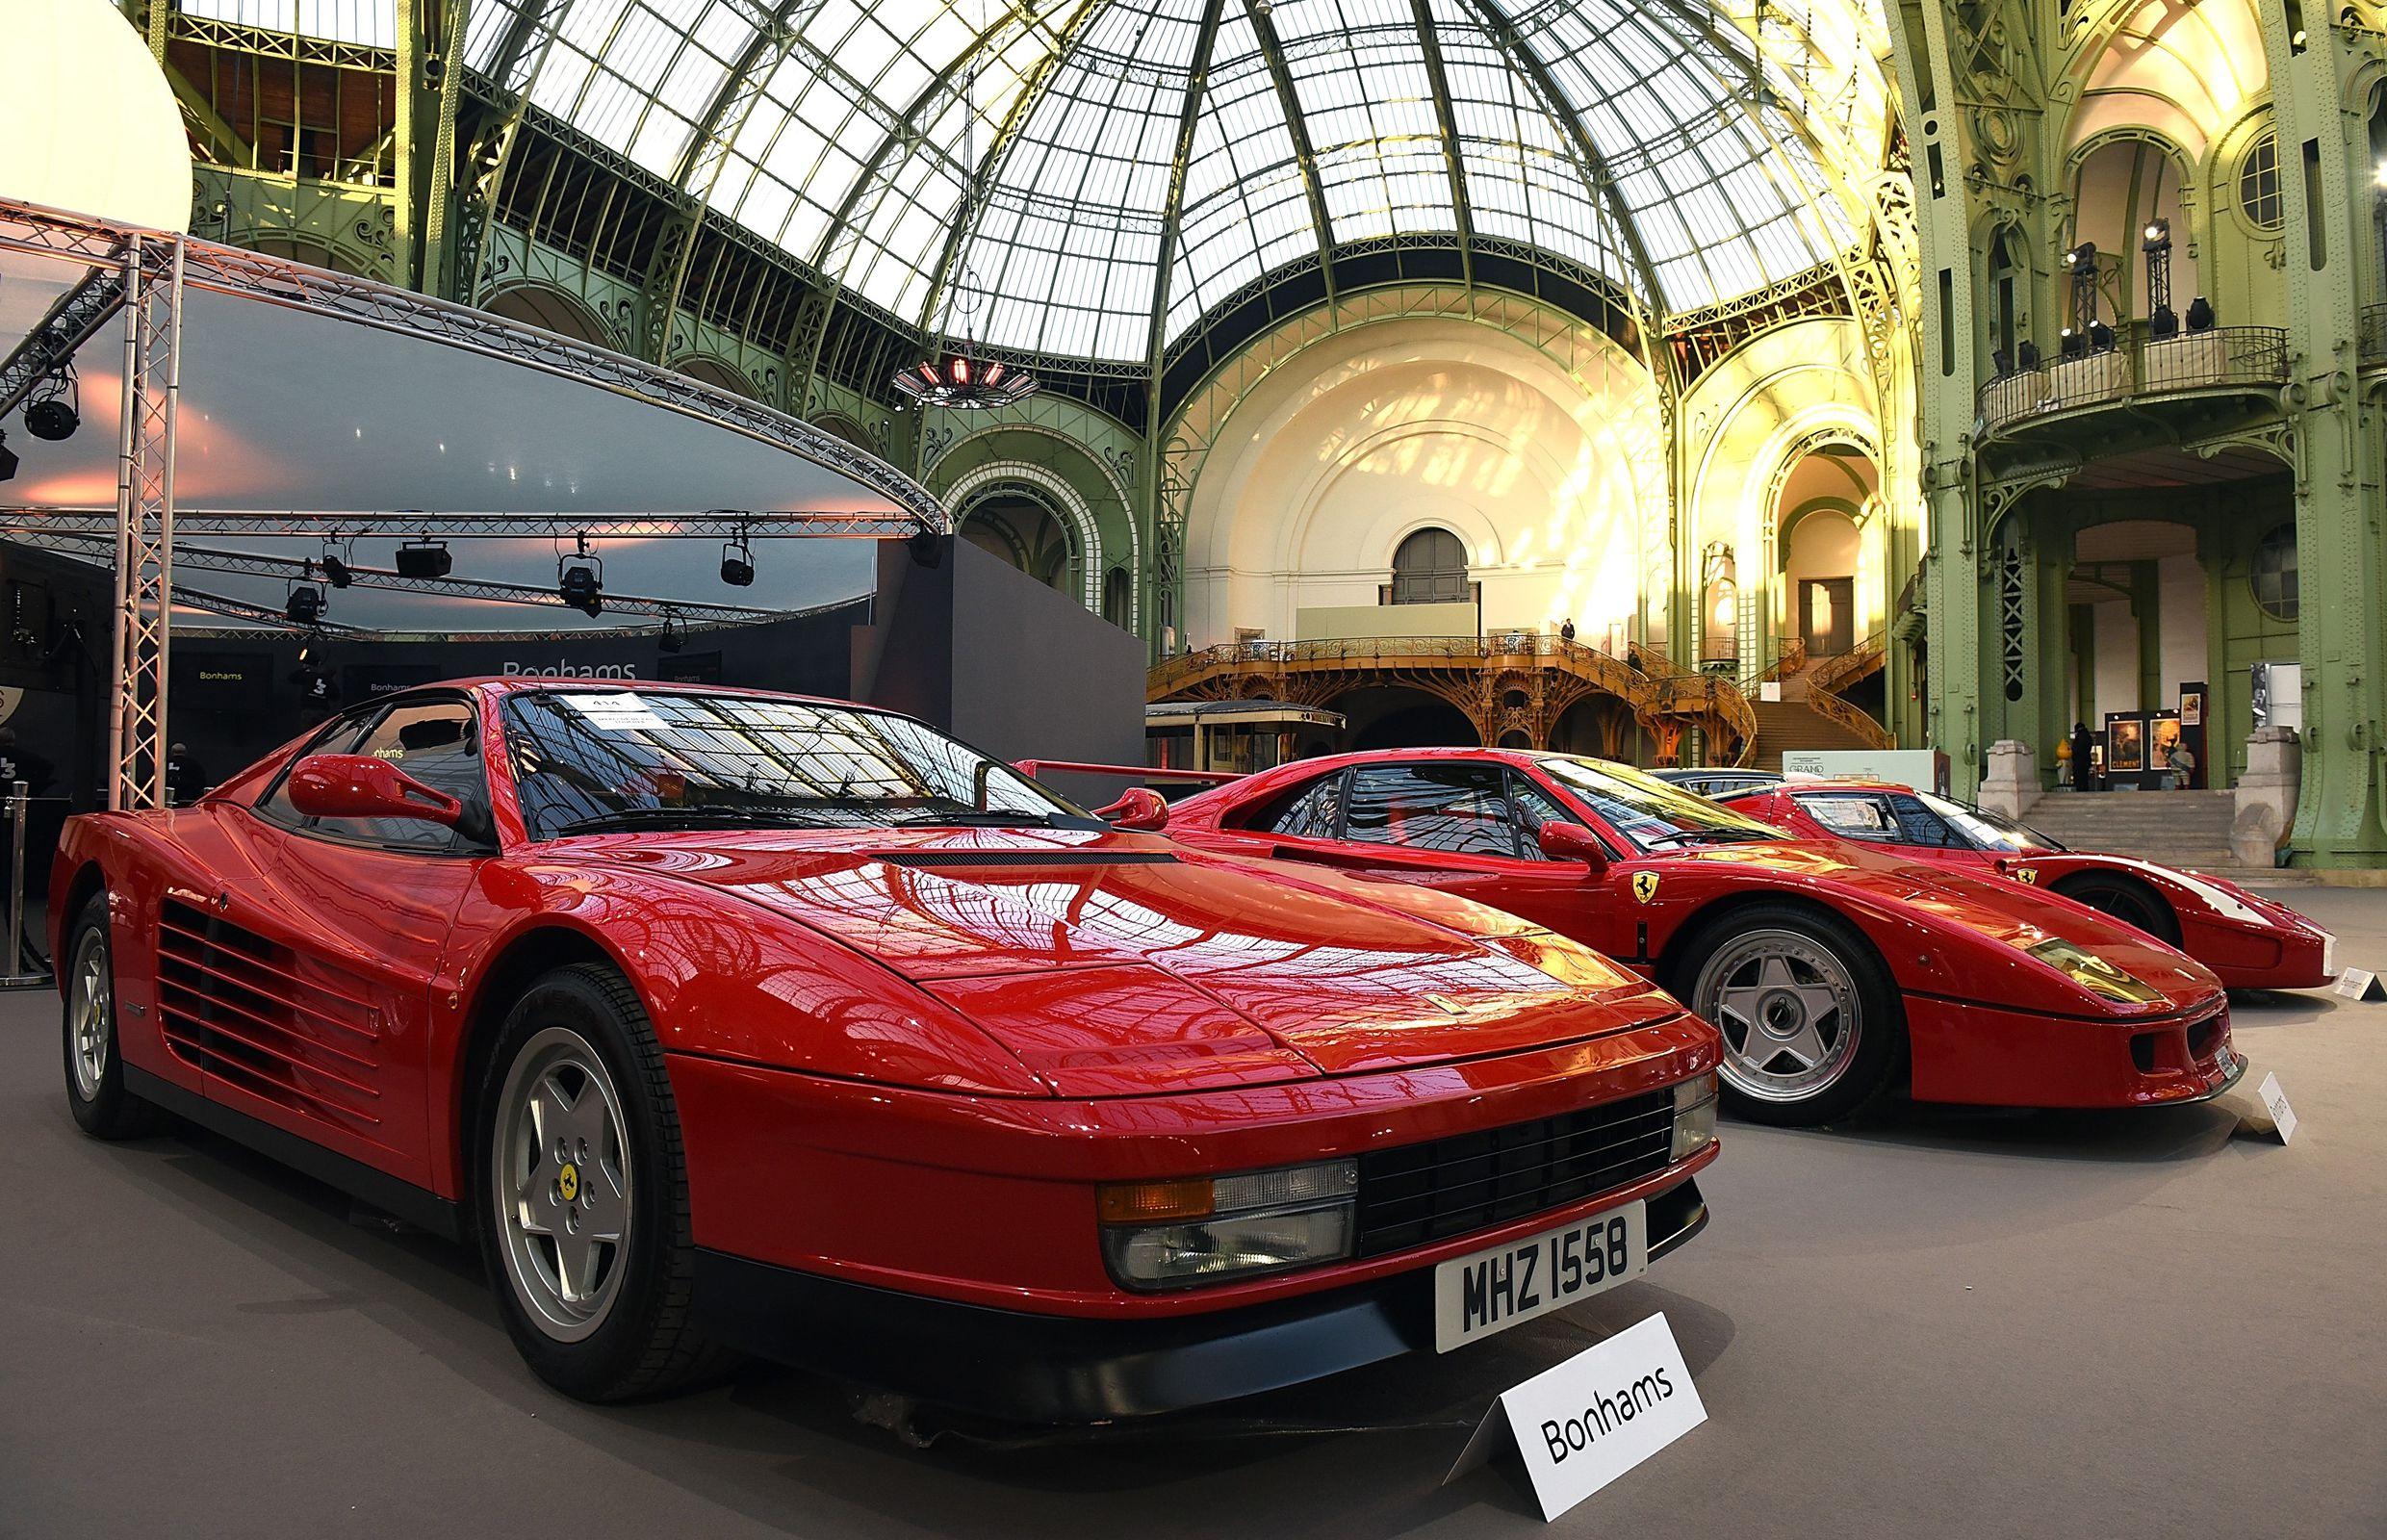 Bonhams Press Preview Of Collector's Motorcycle, Motor Cars and Automobilia At Grand Palais